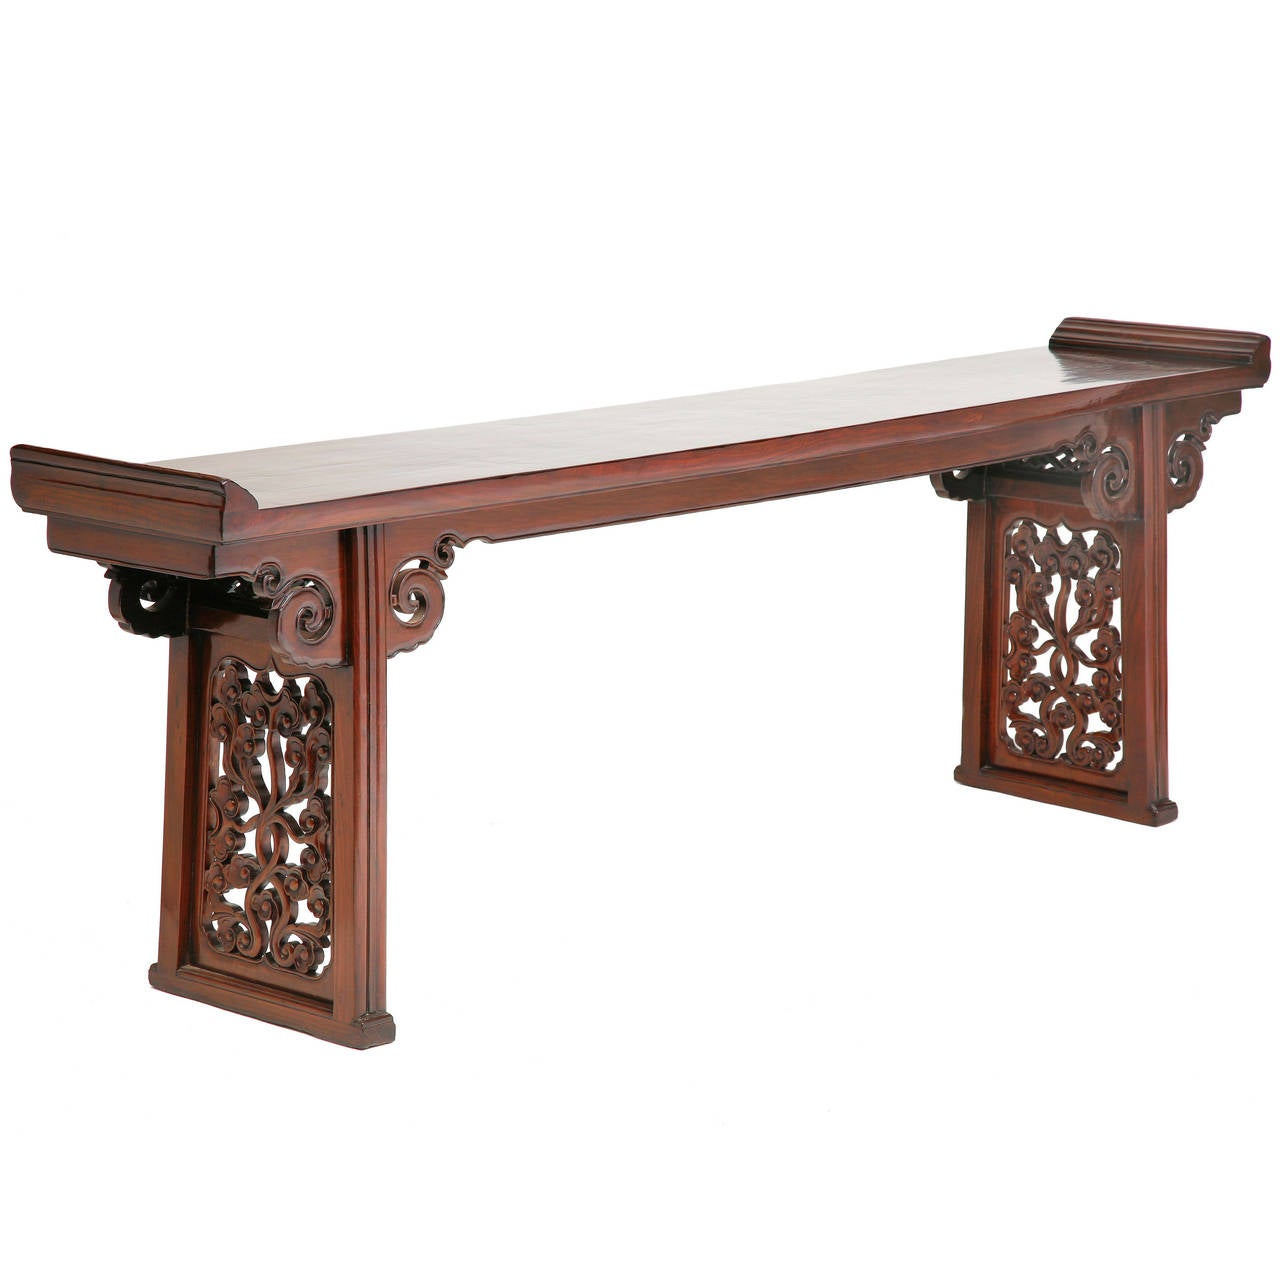 Chinoiserie Altar Table or Console with Everted Flanges in the Ming Style